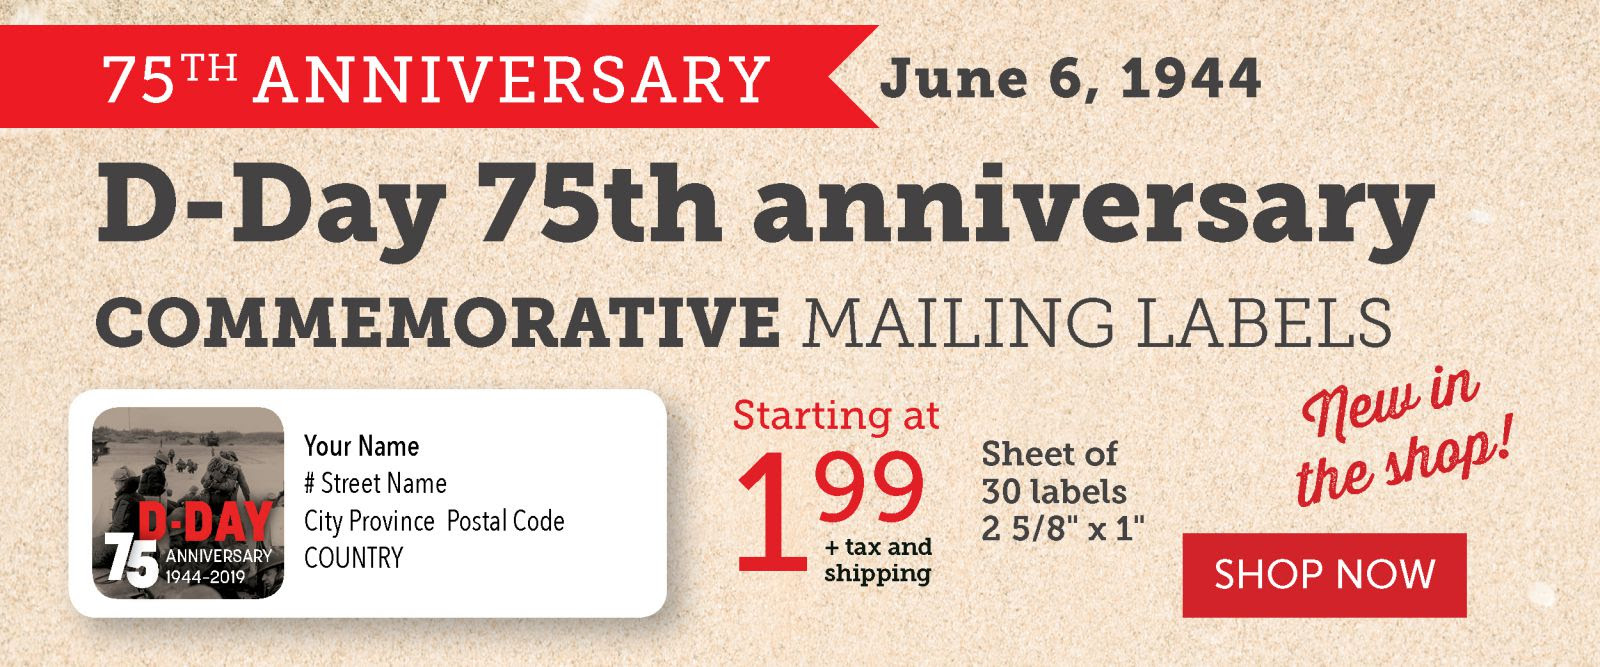 D-DAY 75th Anniversary Mailing Labels